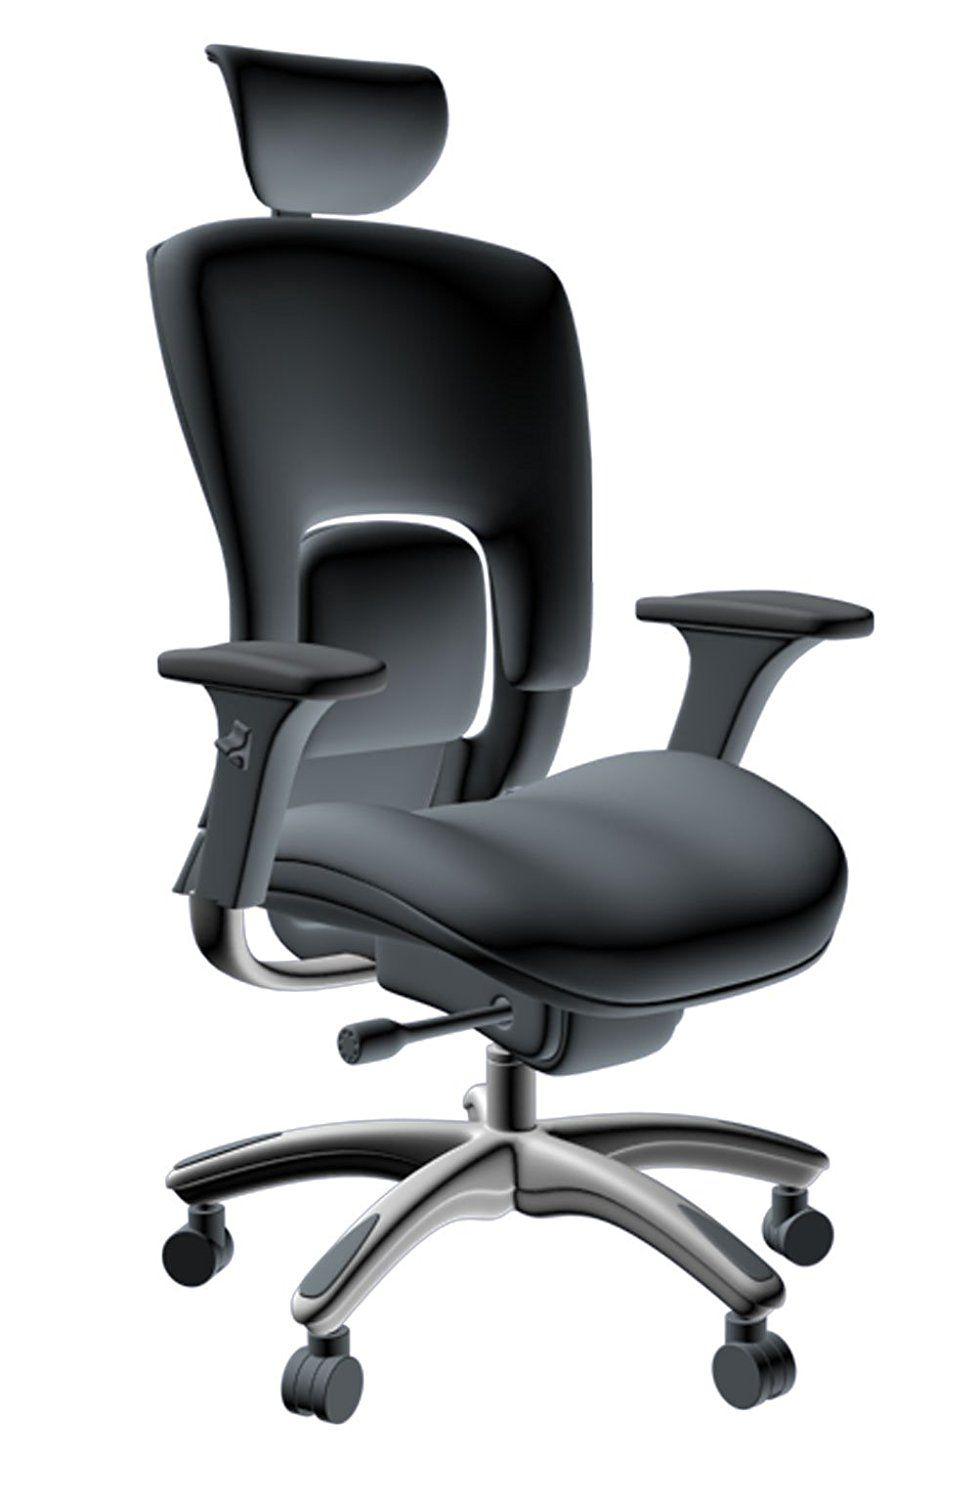 genuine leather executive chair 拆哎 pinterest executive chair